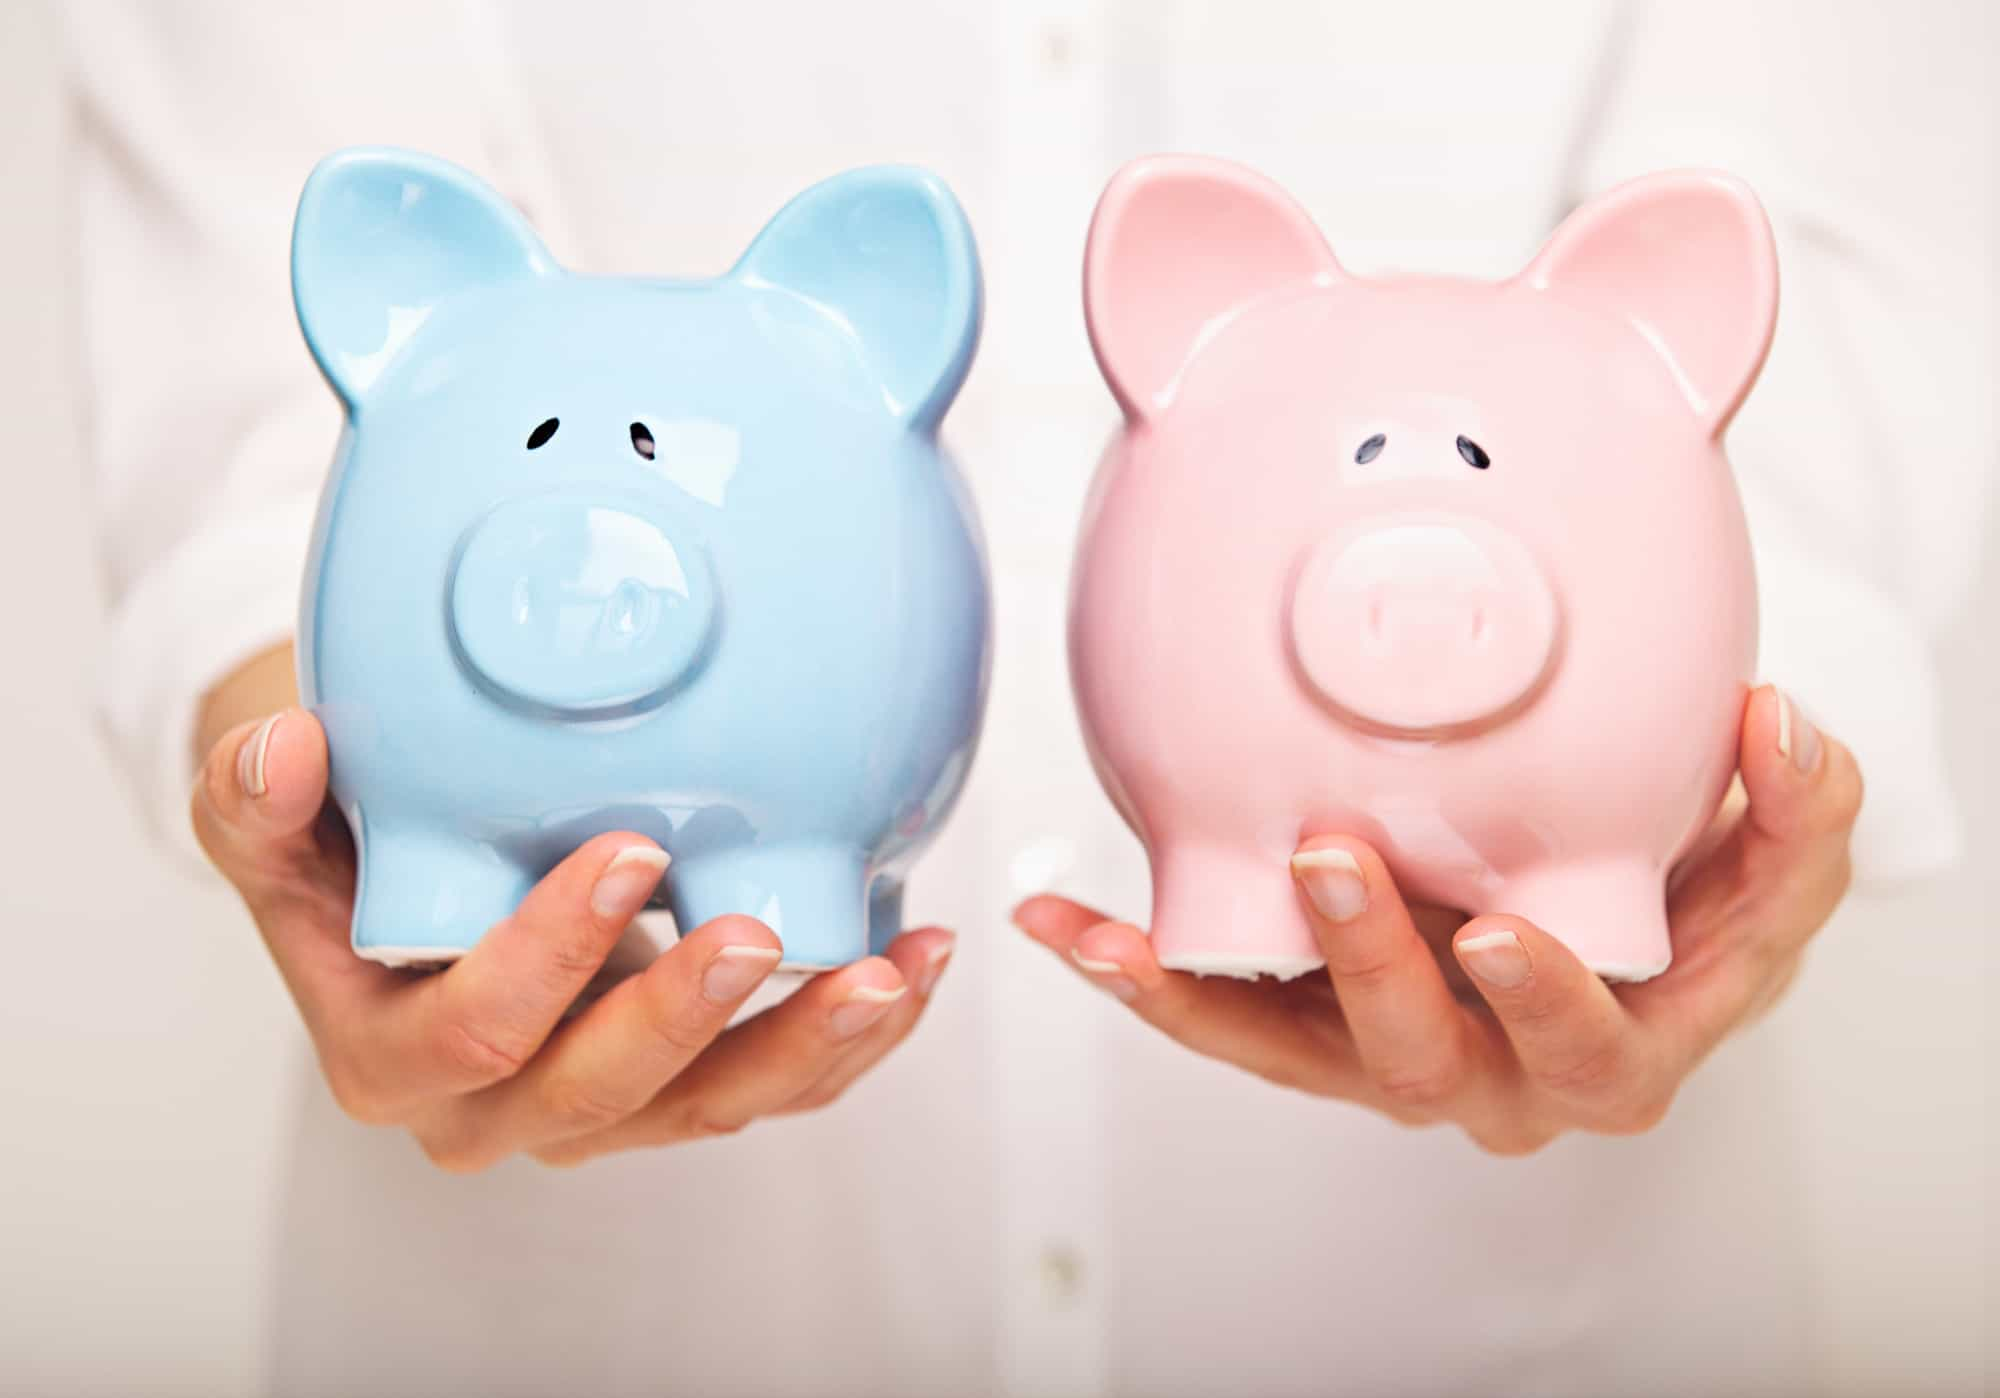 Pink ceramic piggy bank and powder blue ceramic piggy bank held in a woman's hands to separate bank accounts.